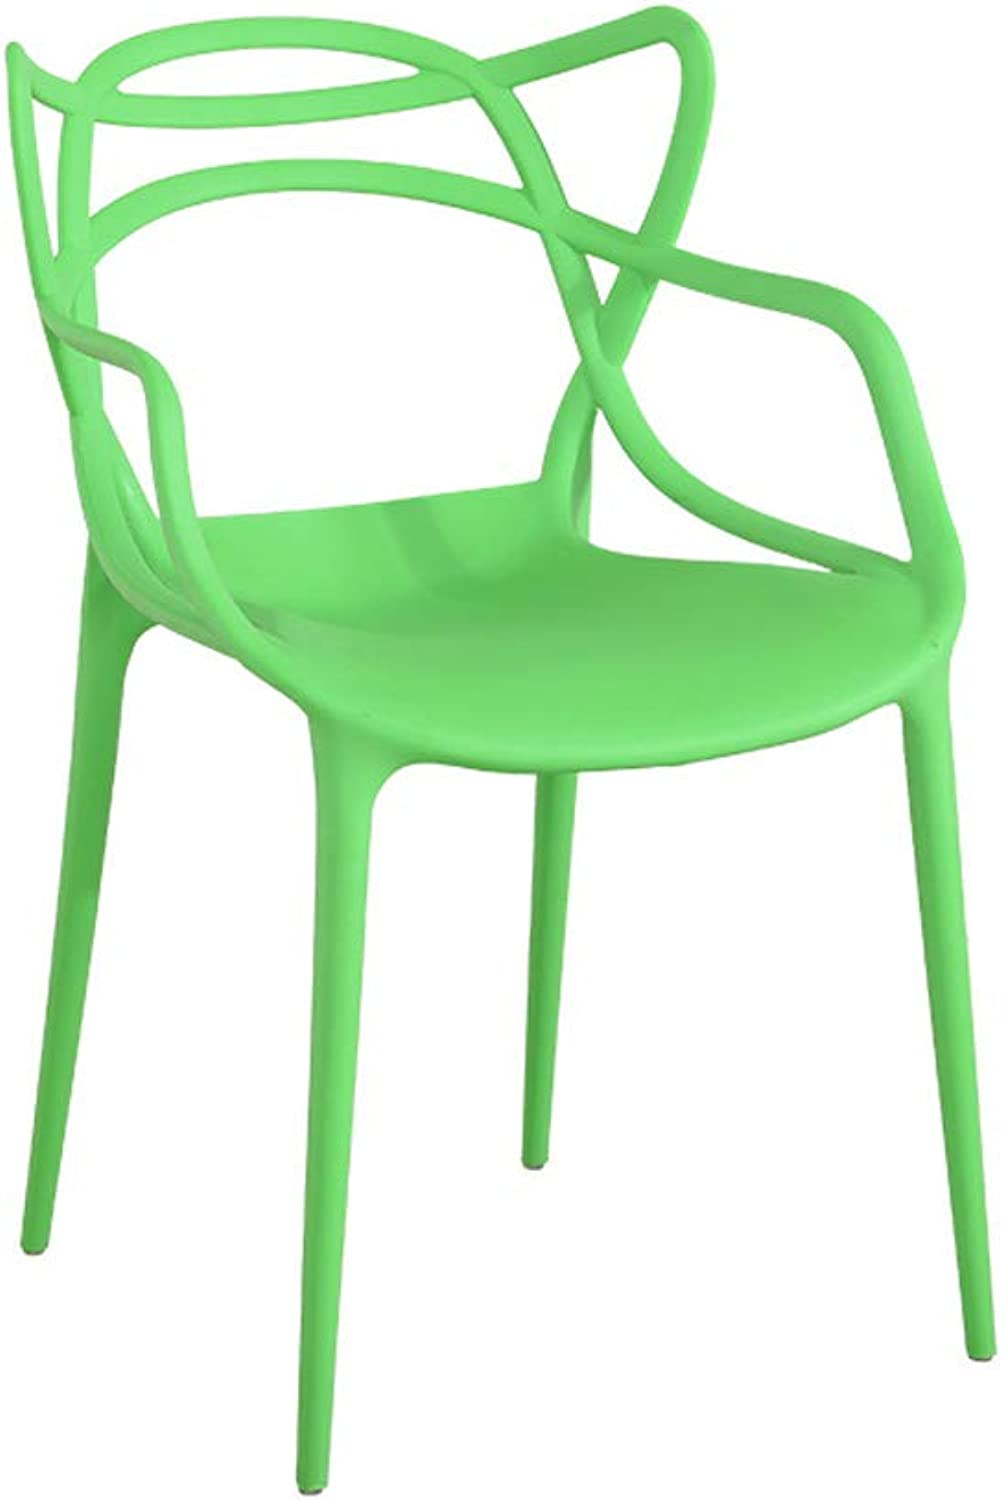 KGMYGS Modern Minimalist Plastic Chair Home Leisure Chair Stylish Backrest Dining Table Six colors Available (color   Green)